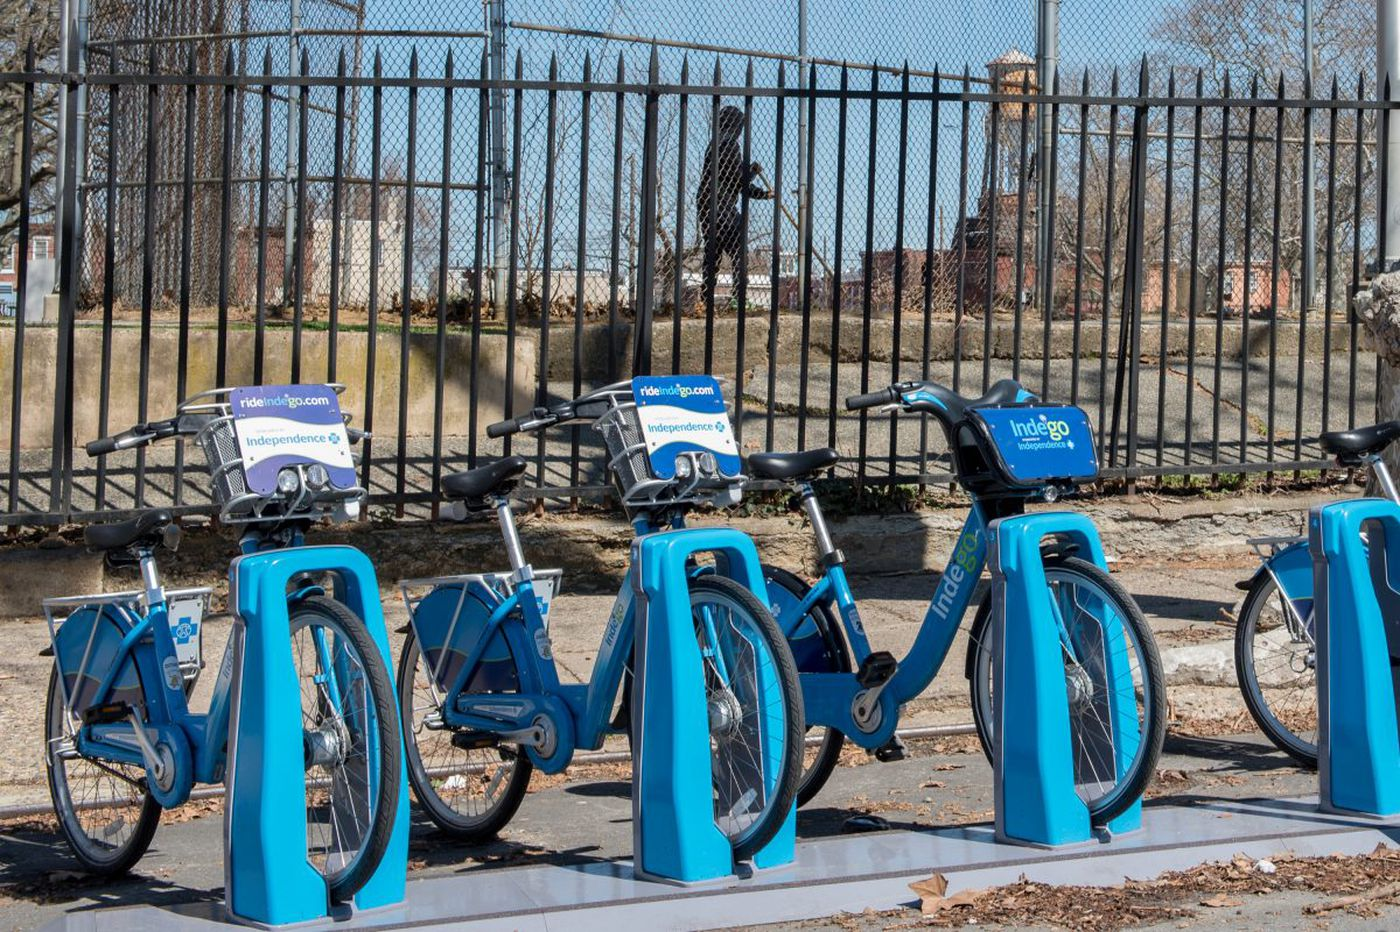 Dockless bike share is the next transportation trend Philly should embrace | Opinion